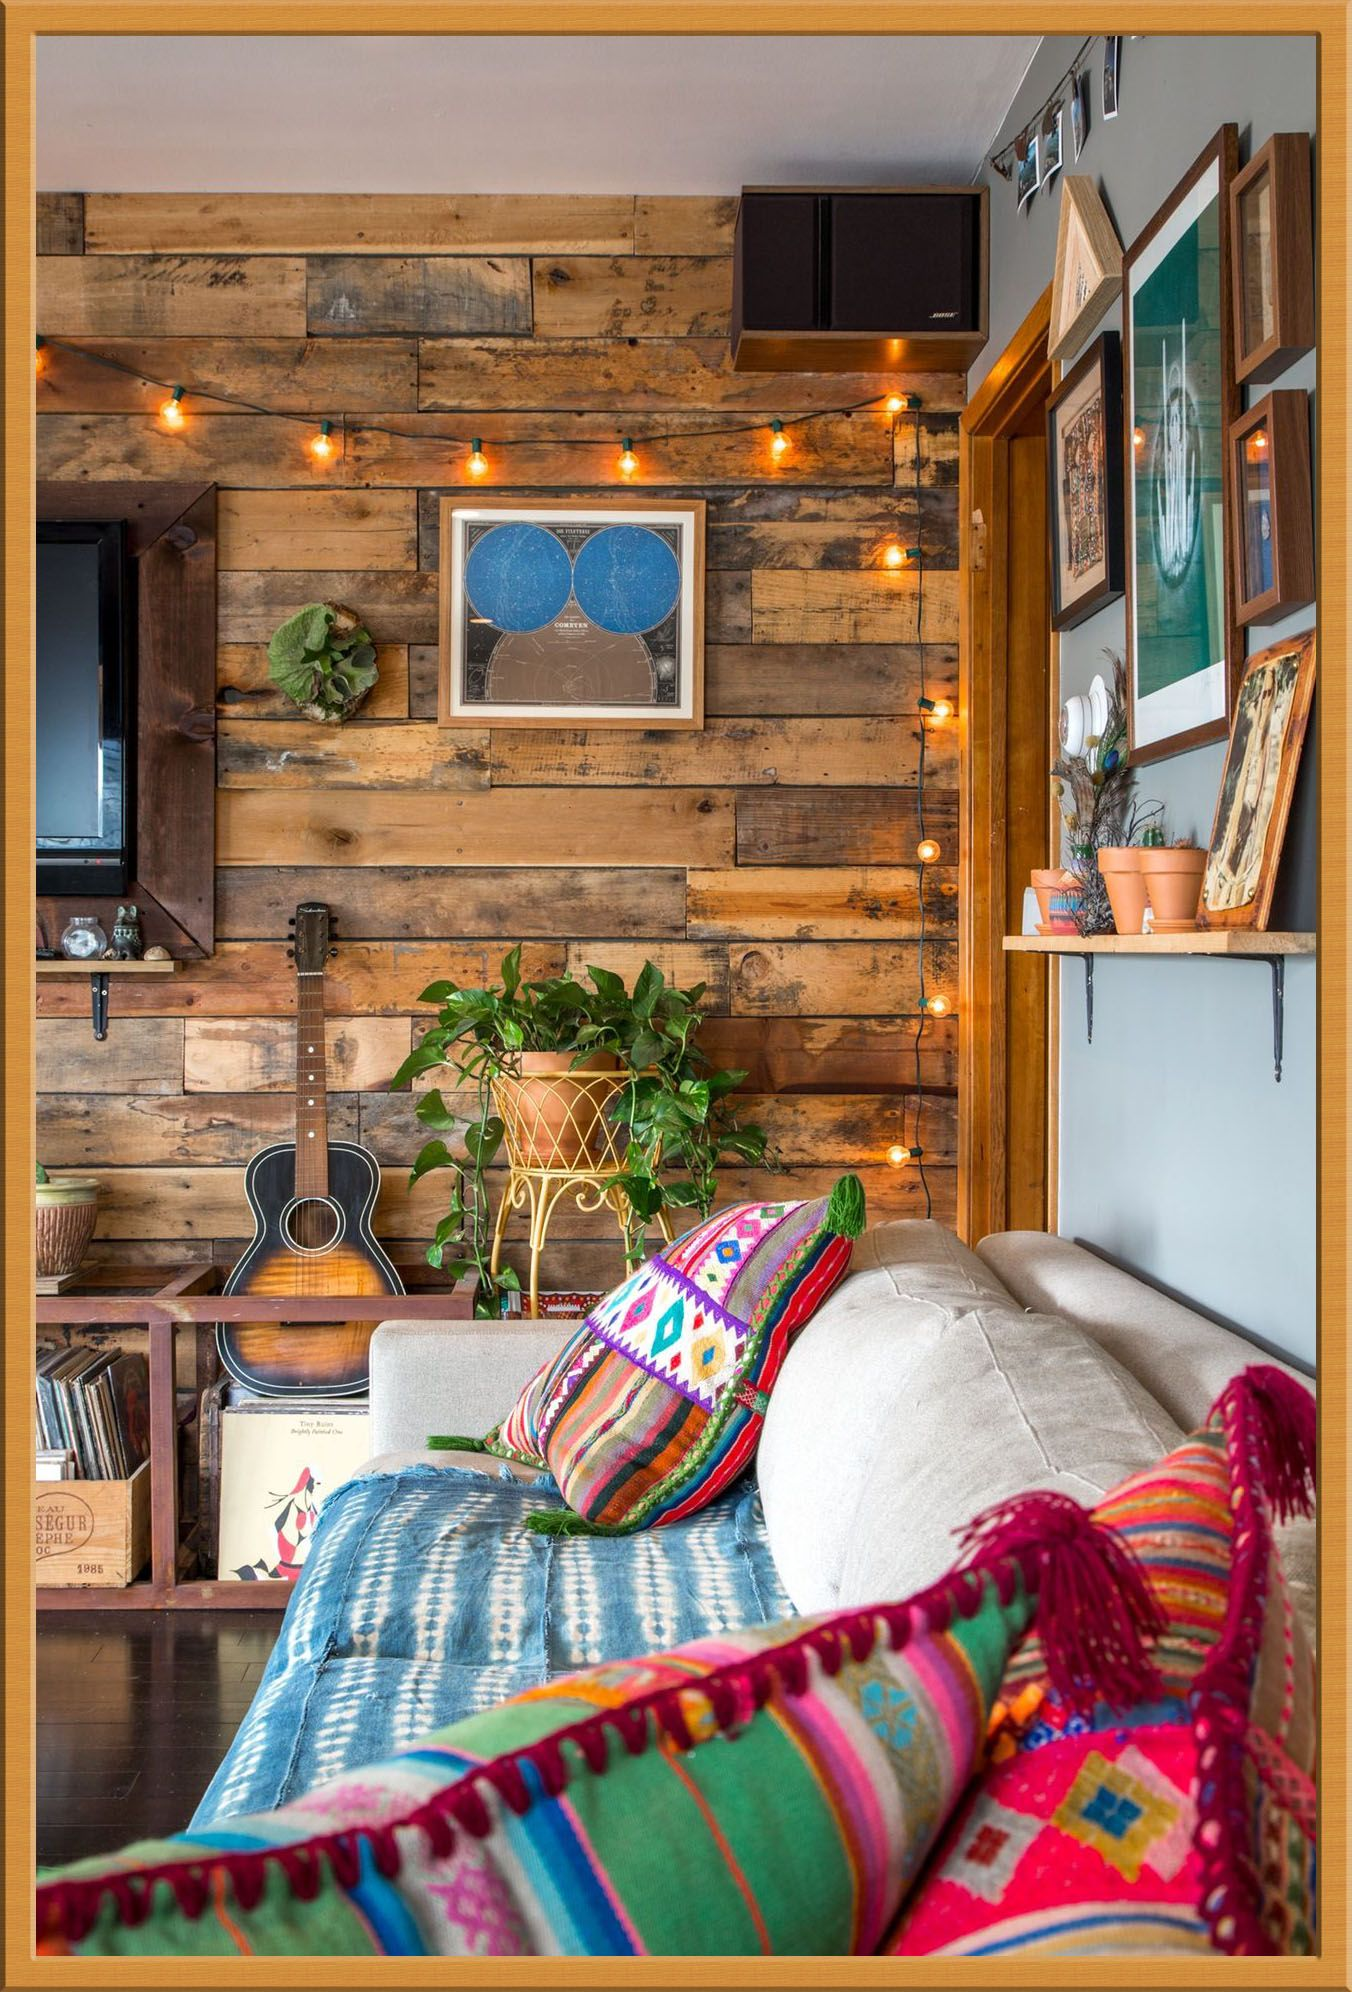 The Lazy Man's Guide To Bohemian Homedecor